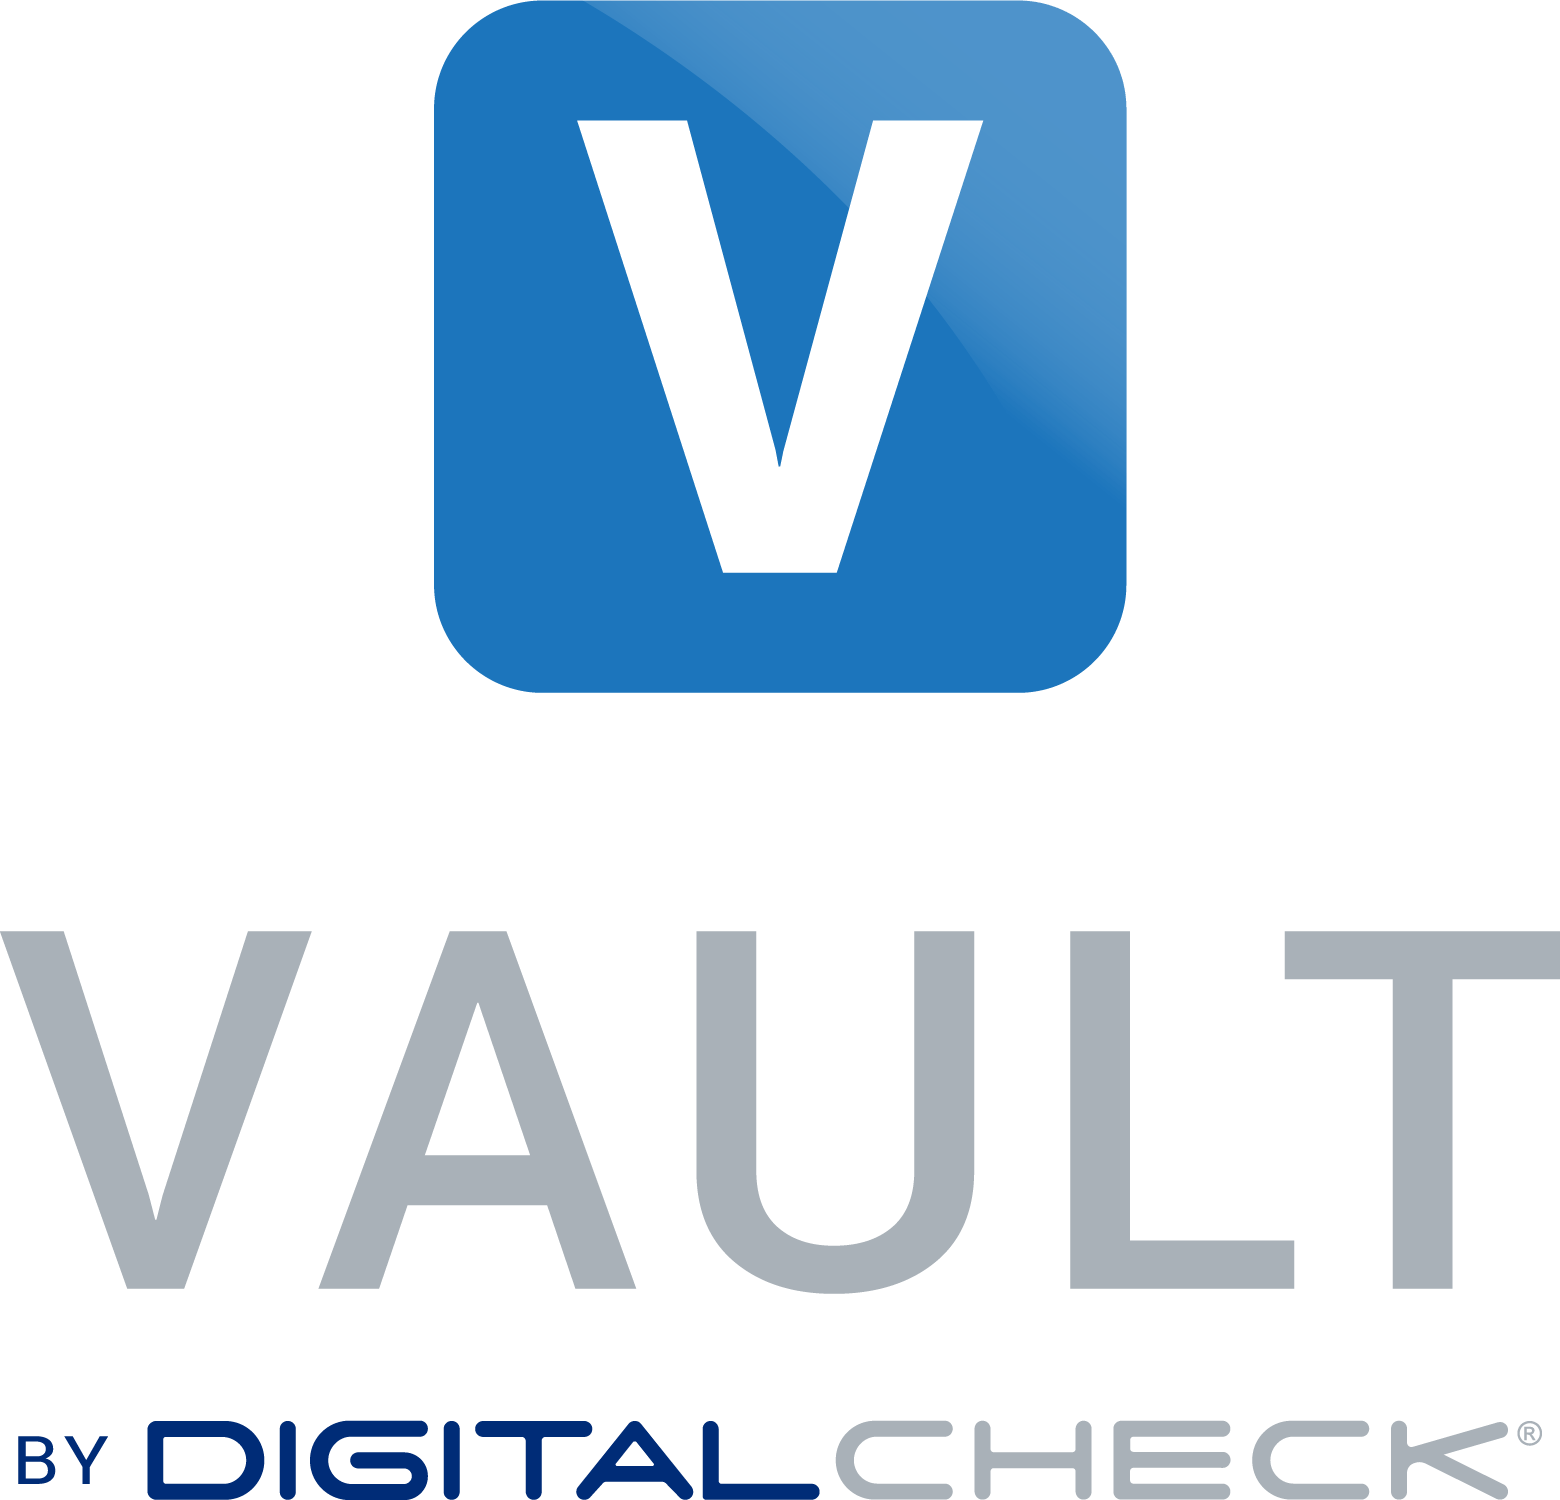 Vault by Digital Check<sup><small>®</small></sup>